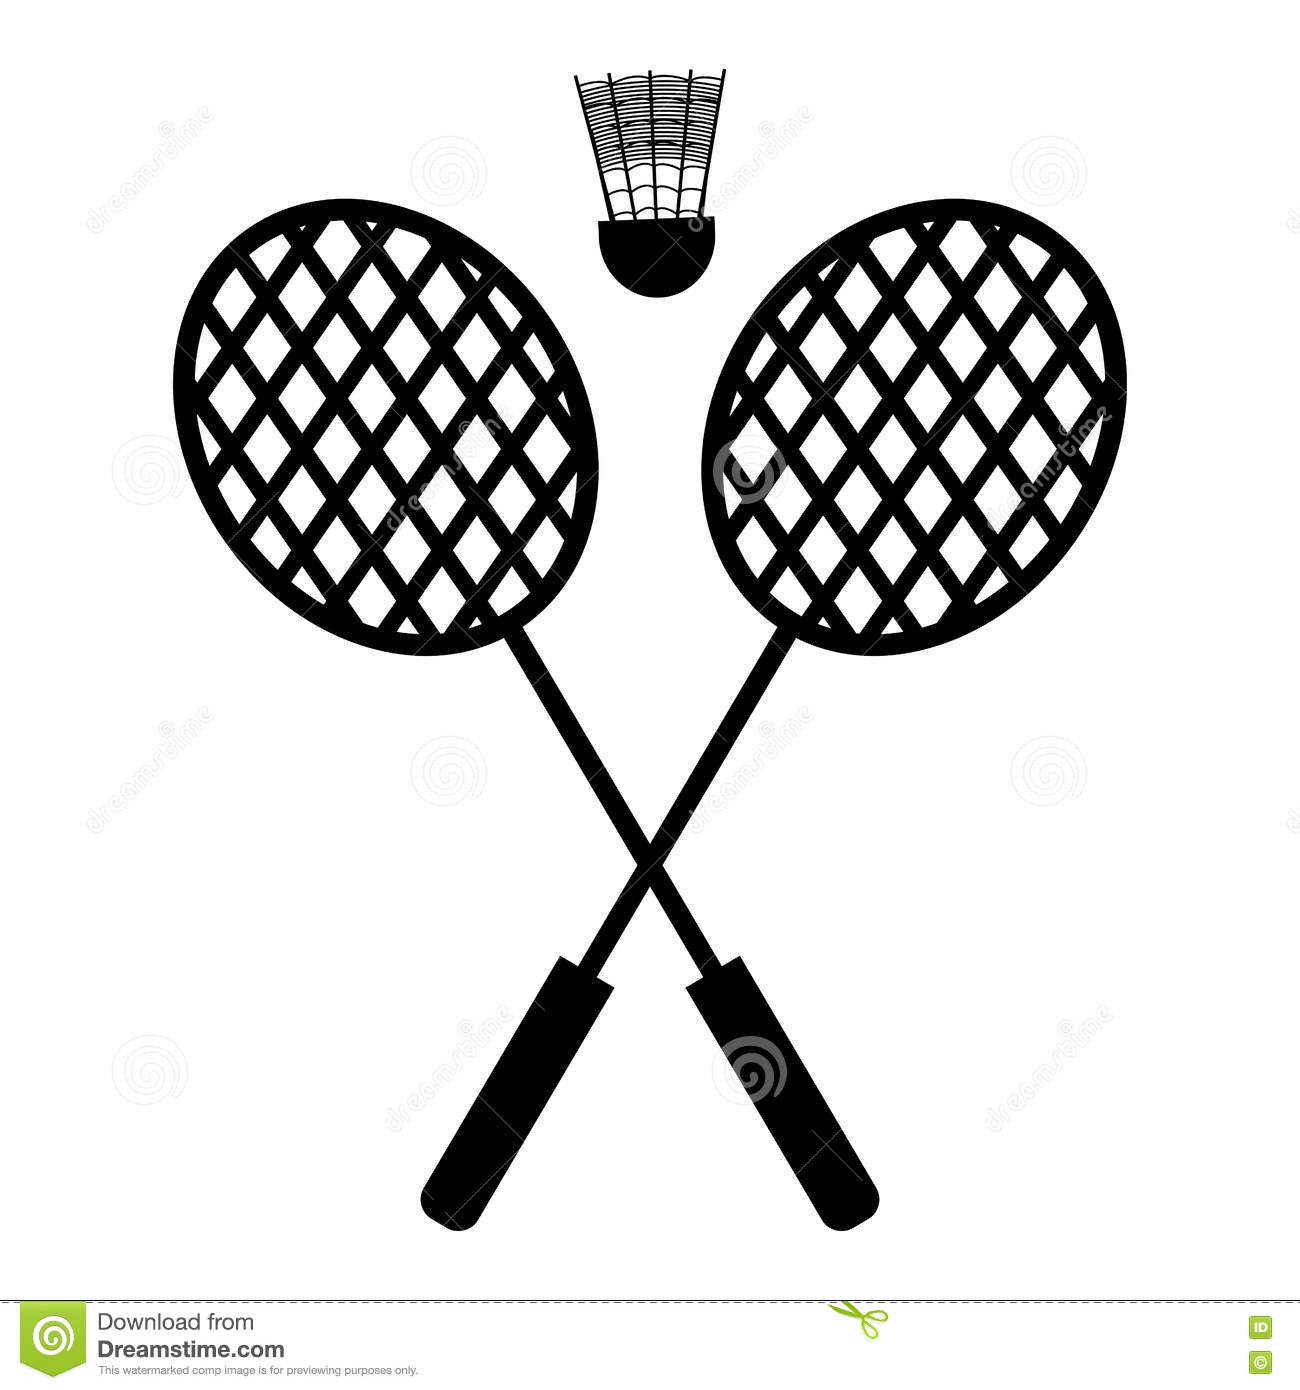 badminton racket and shuttle drawing